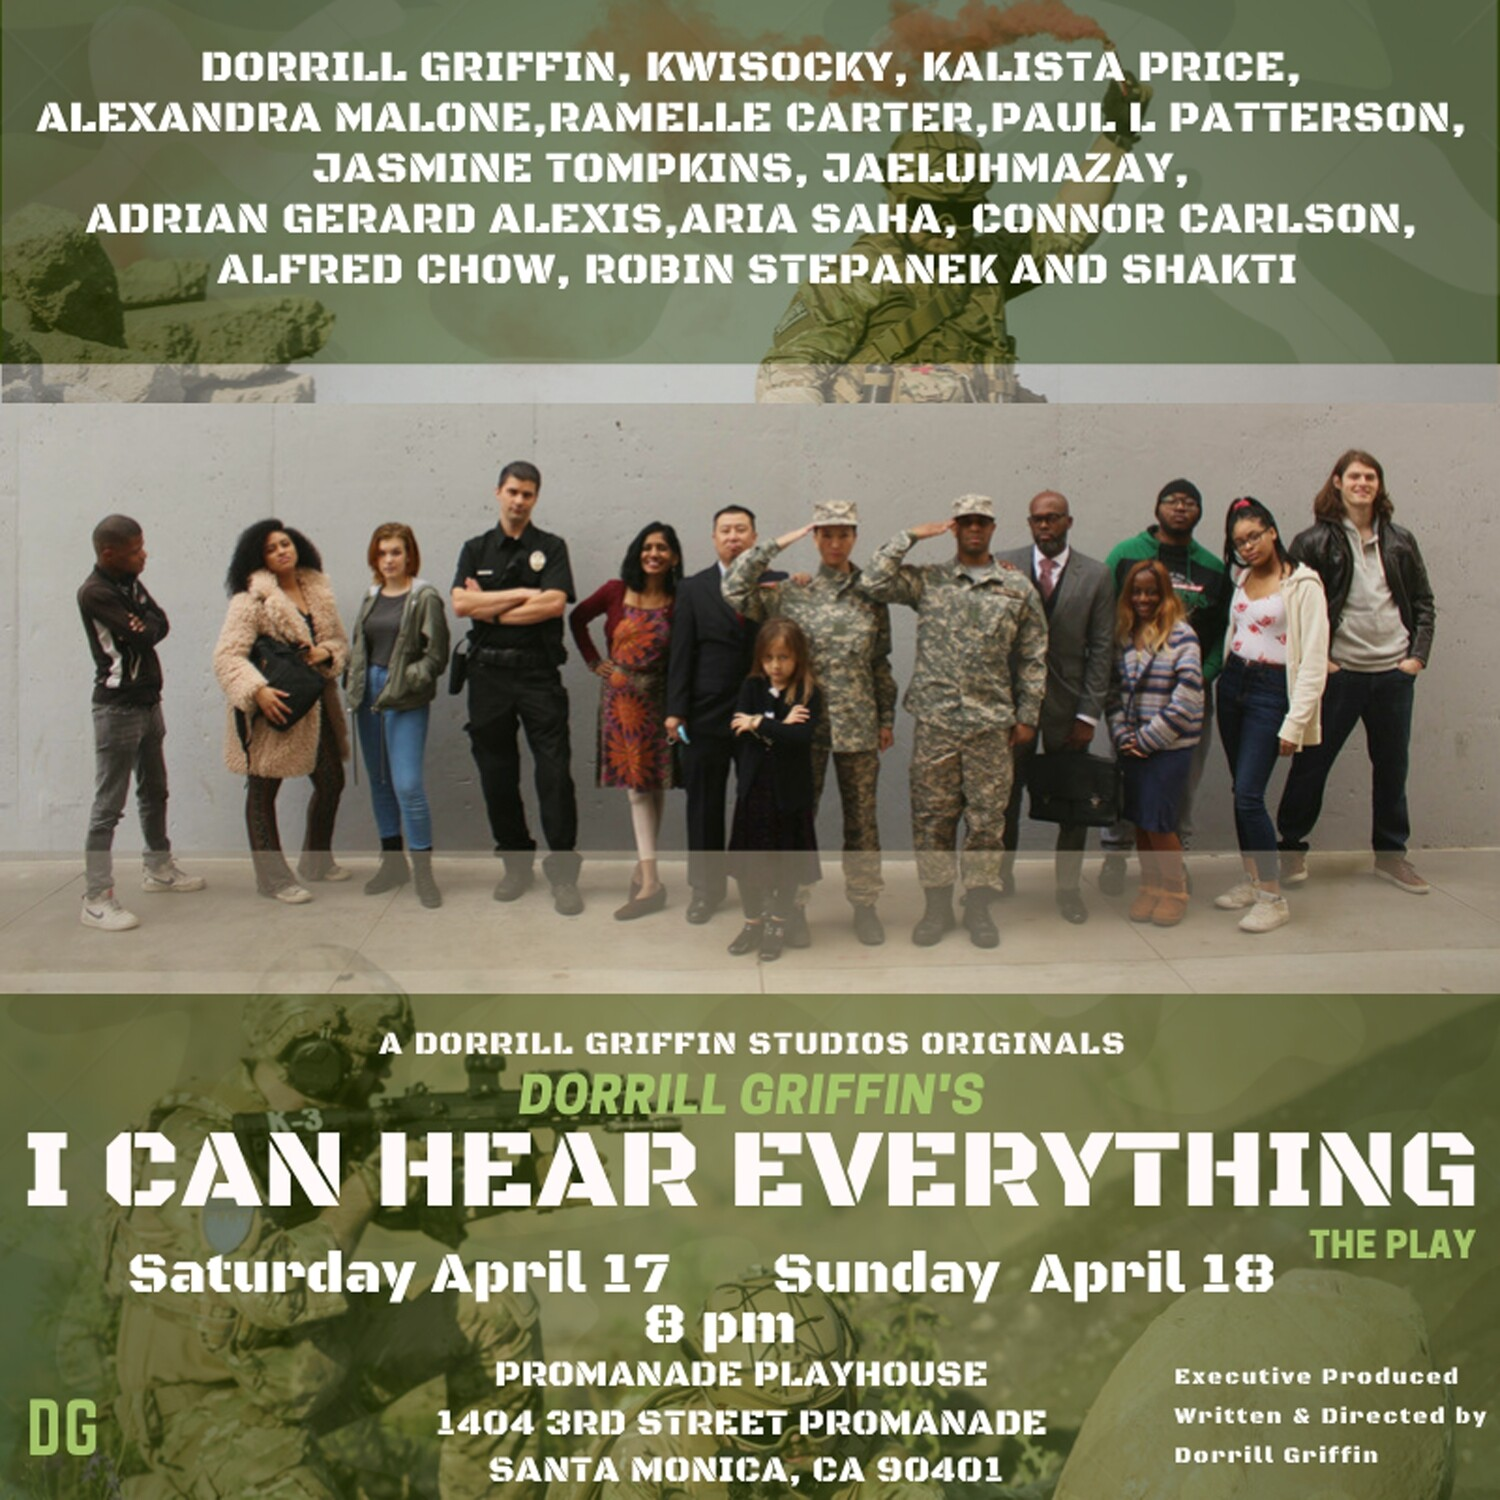 I CAN HEAR EVERYTHING ARIL 24TH  8PM VIRTUAL ONLY SHOW